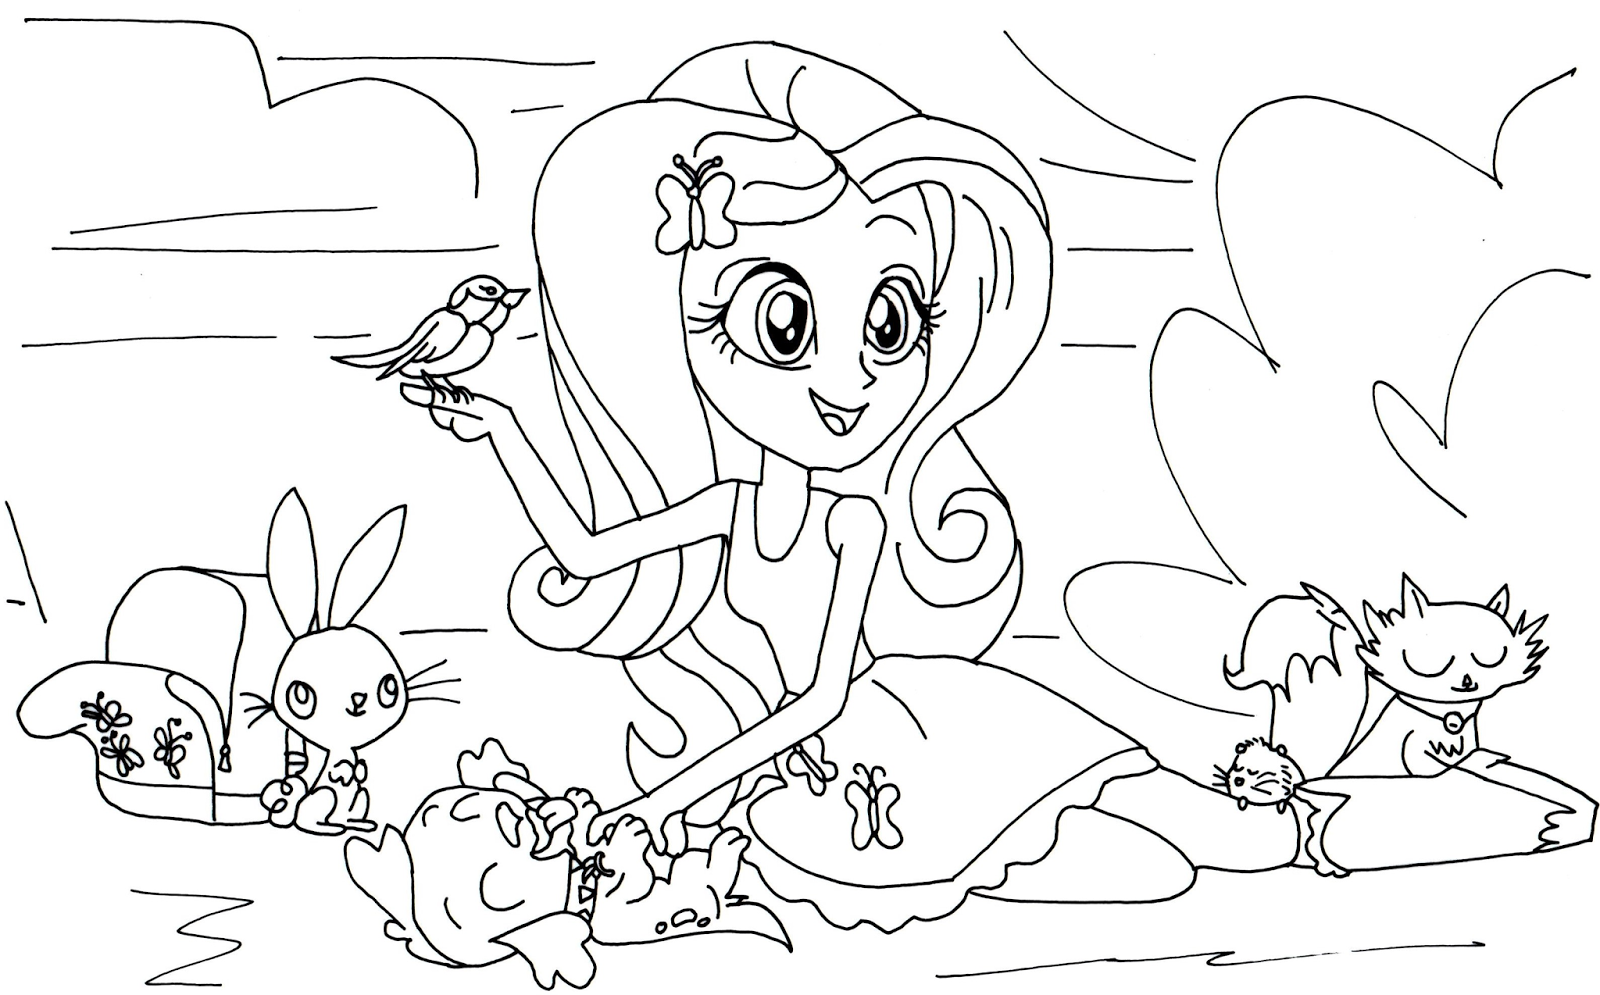 Coloring Pages Of My Little Pony Equestria : Free printable my little pony coloring pages fluttershy